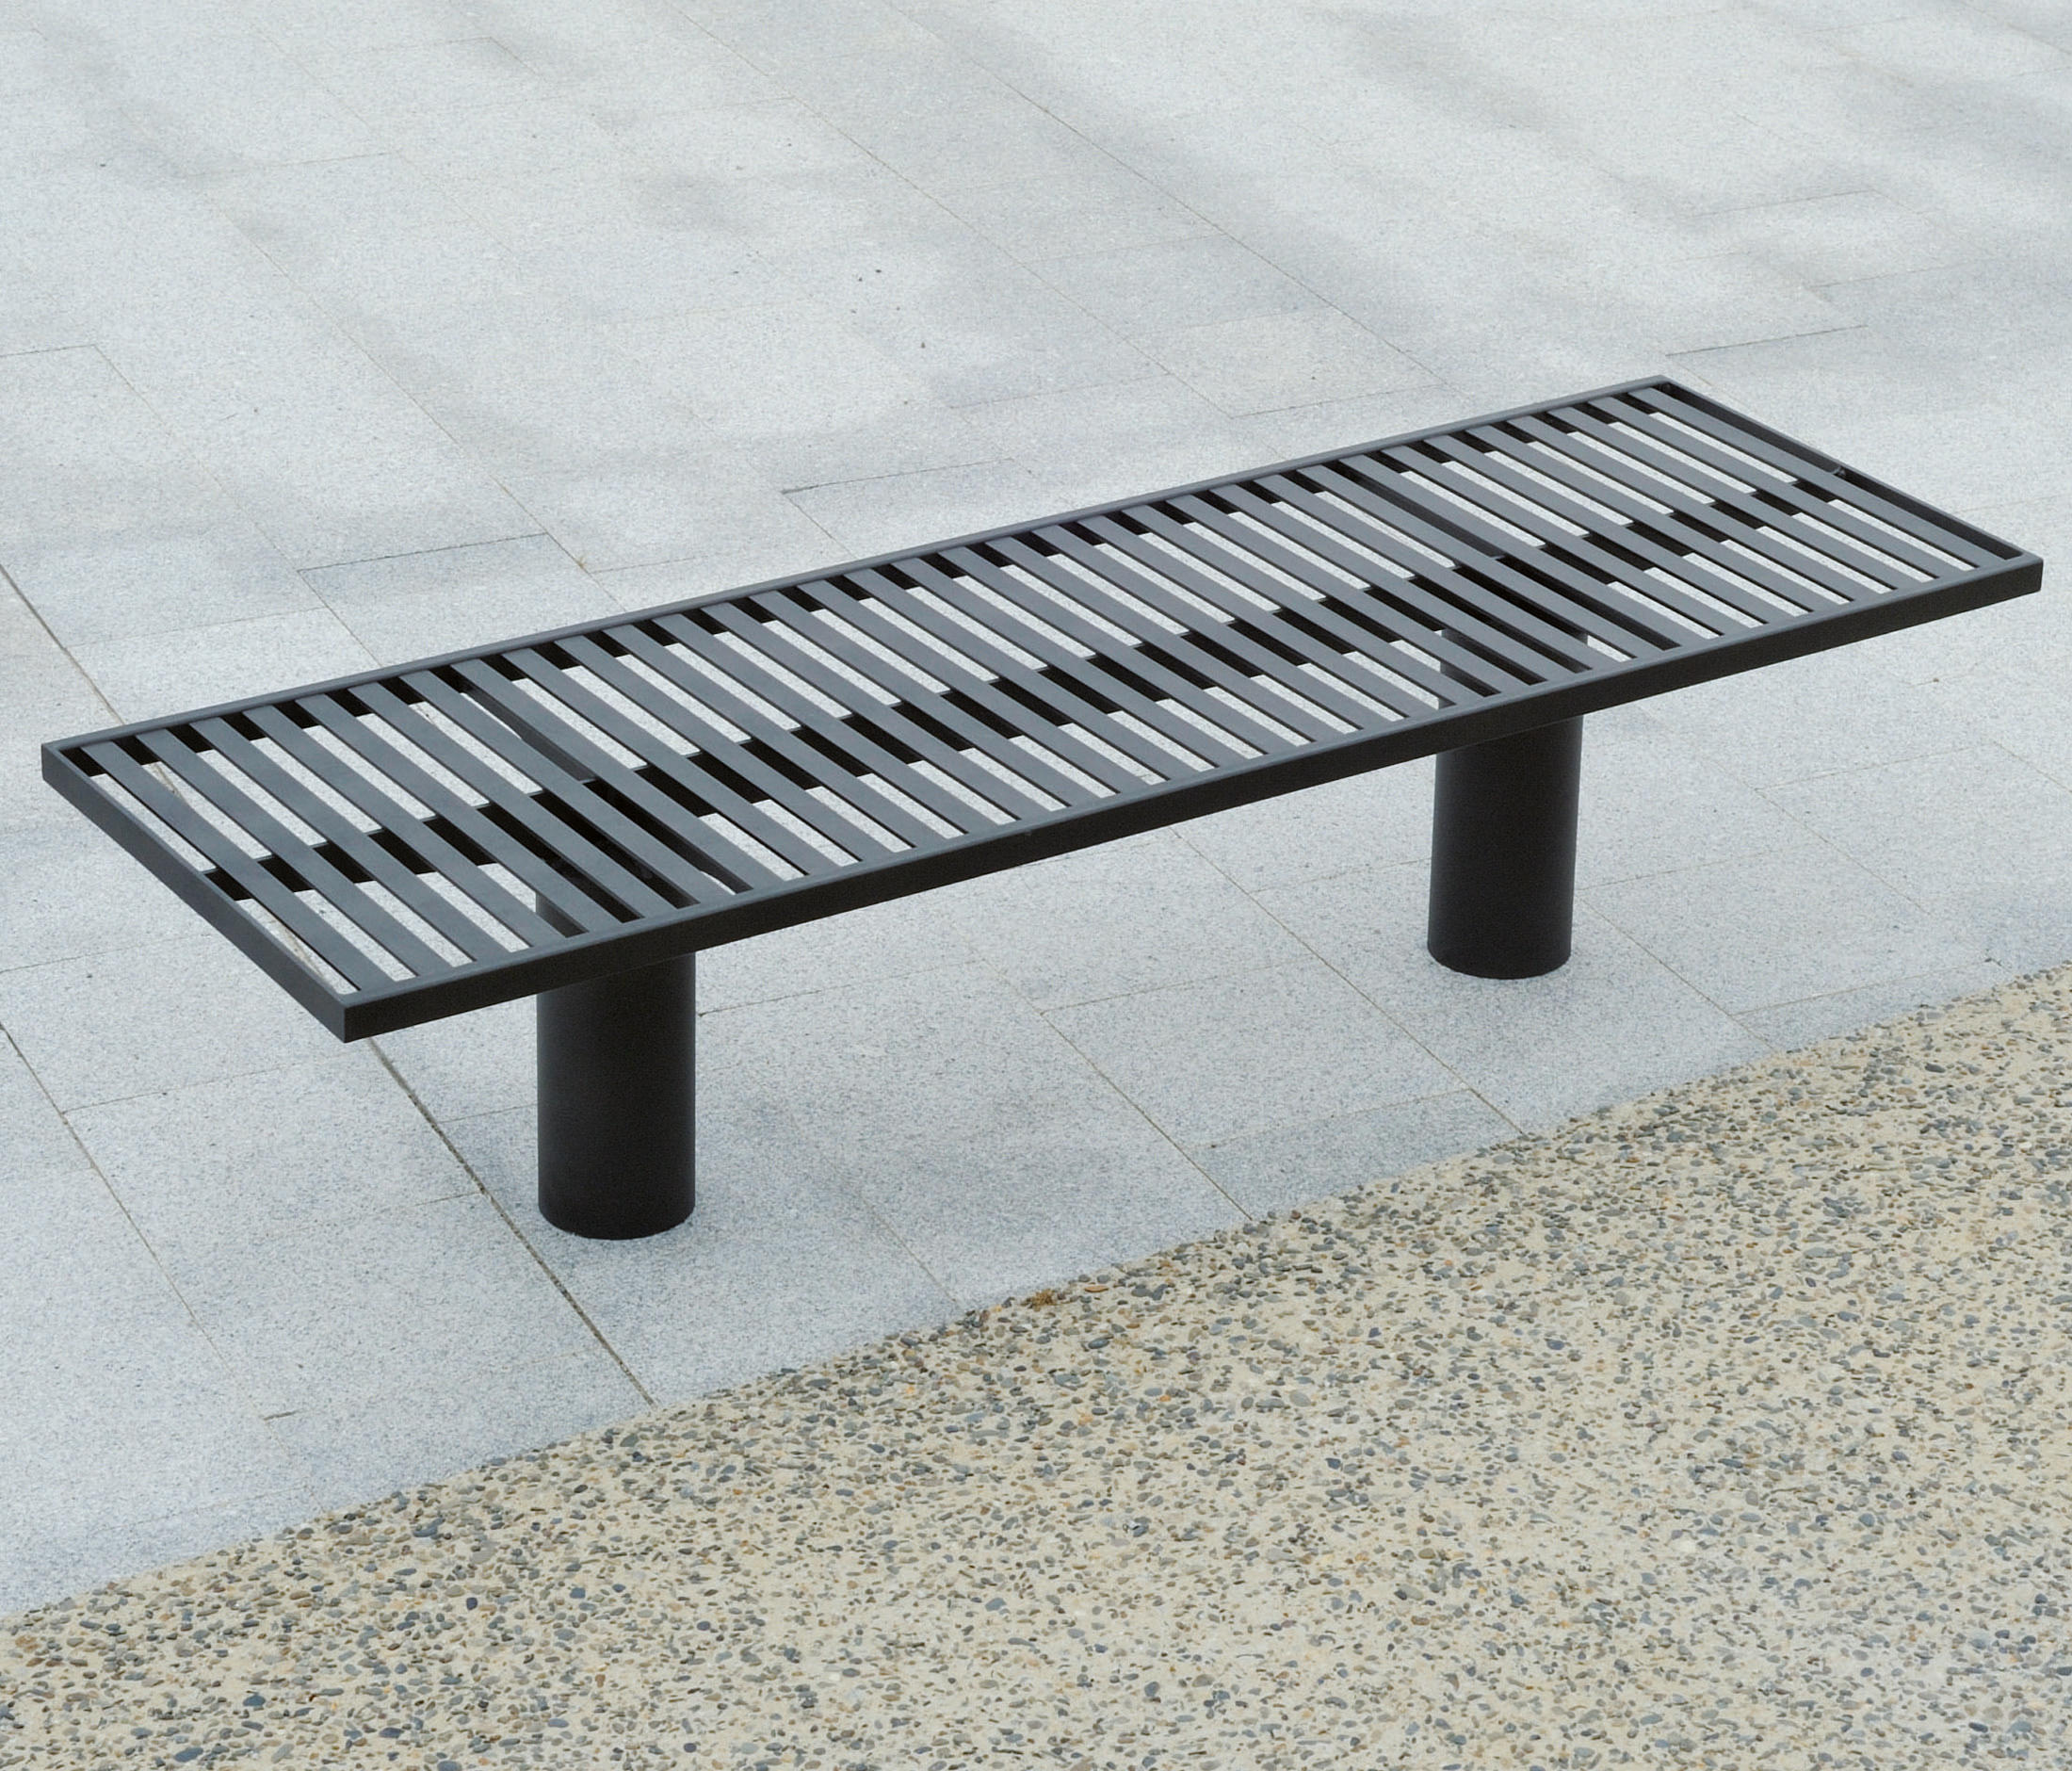 coral inuse back coast hayneedle cfm curved outdoor ft product metal garden crossweave bench